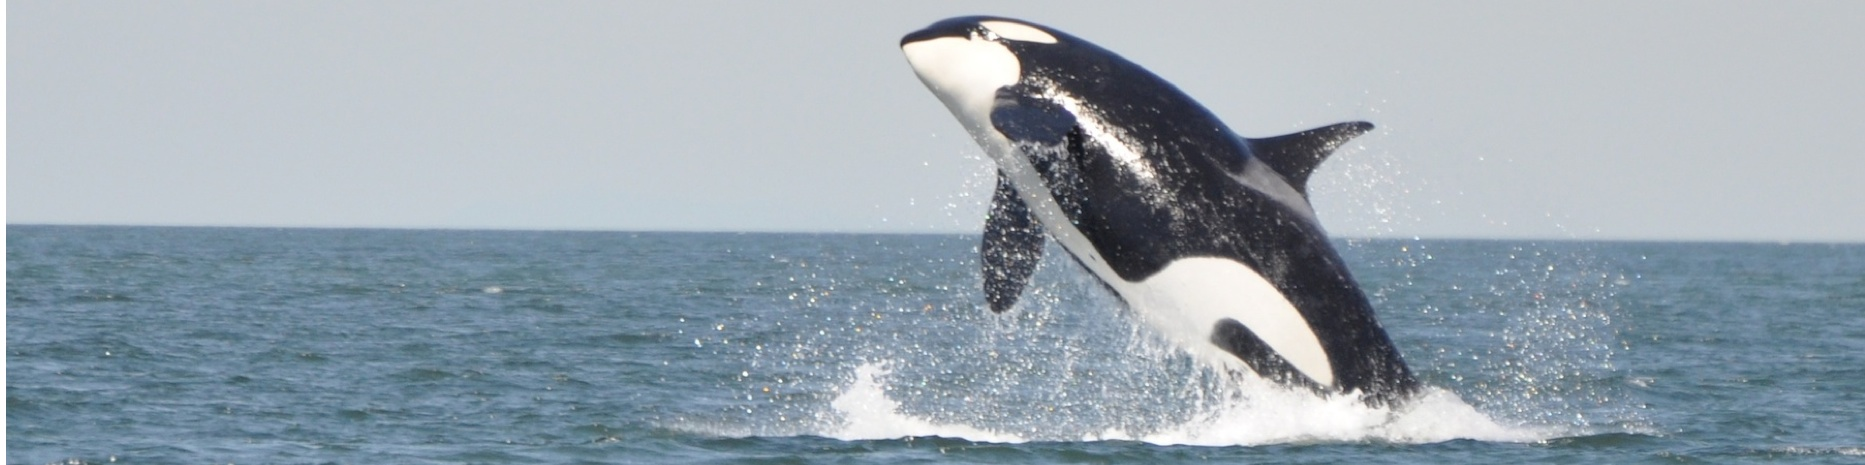 orca jumping close to Pender Island